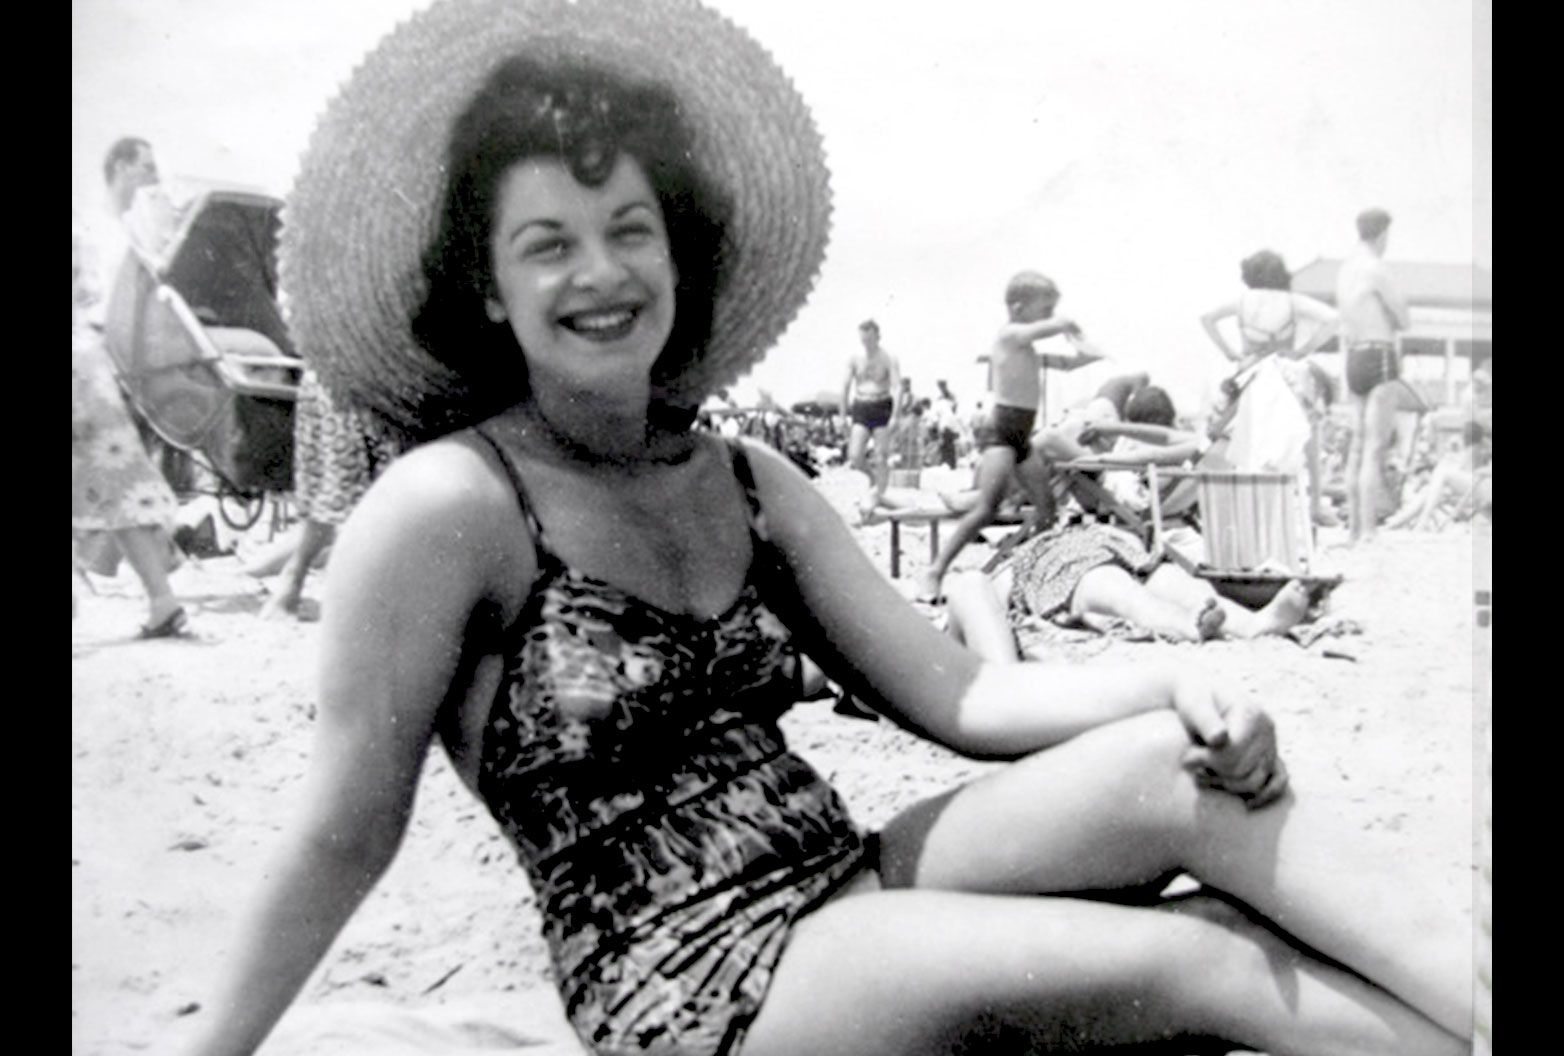 Black and white photo of a young woman sitting on the sand at a beach in a one piece bathing suit. She is wearing a large straw hat and smiling for the camera.